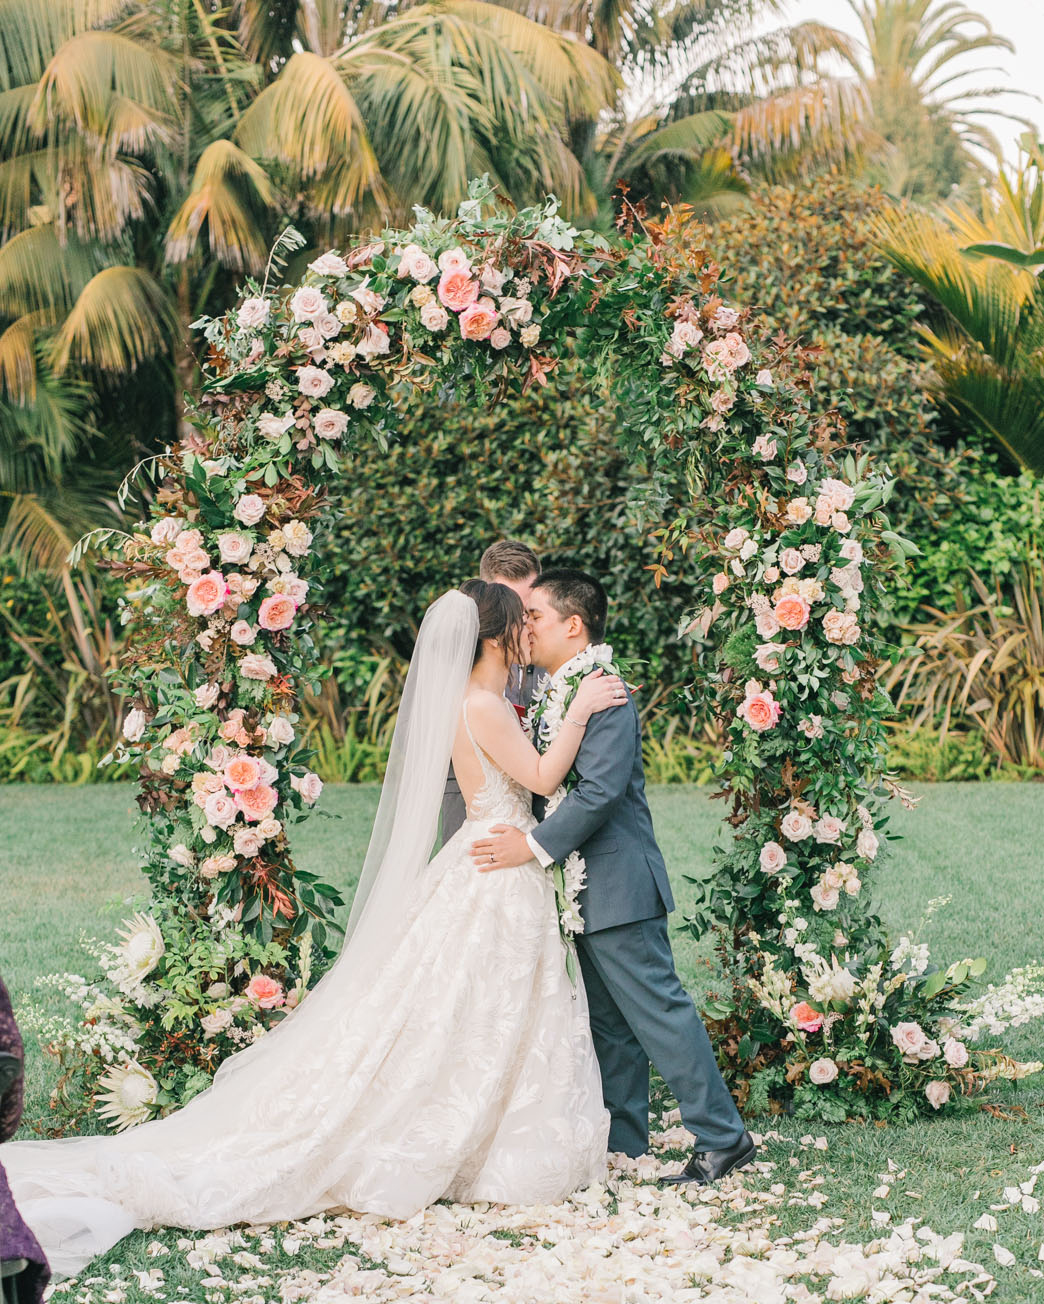 corey evan wedding couple kiss during ceremony under floral arch